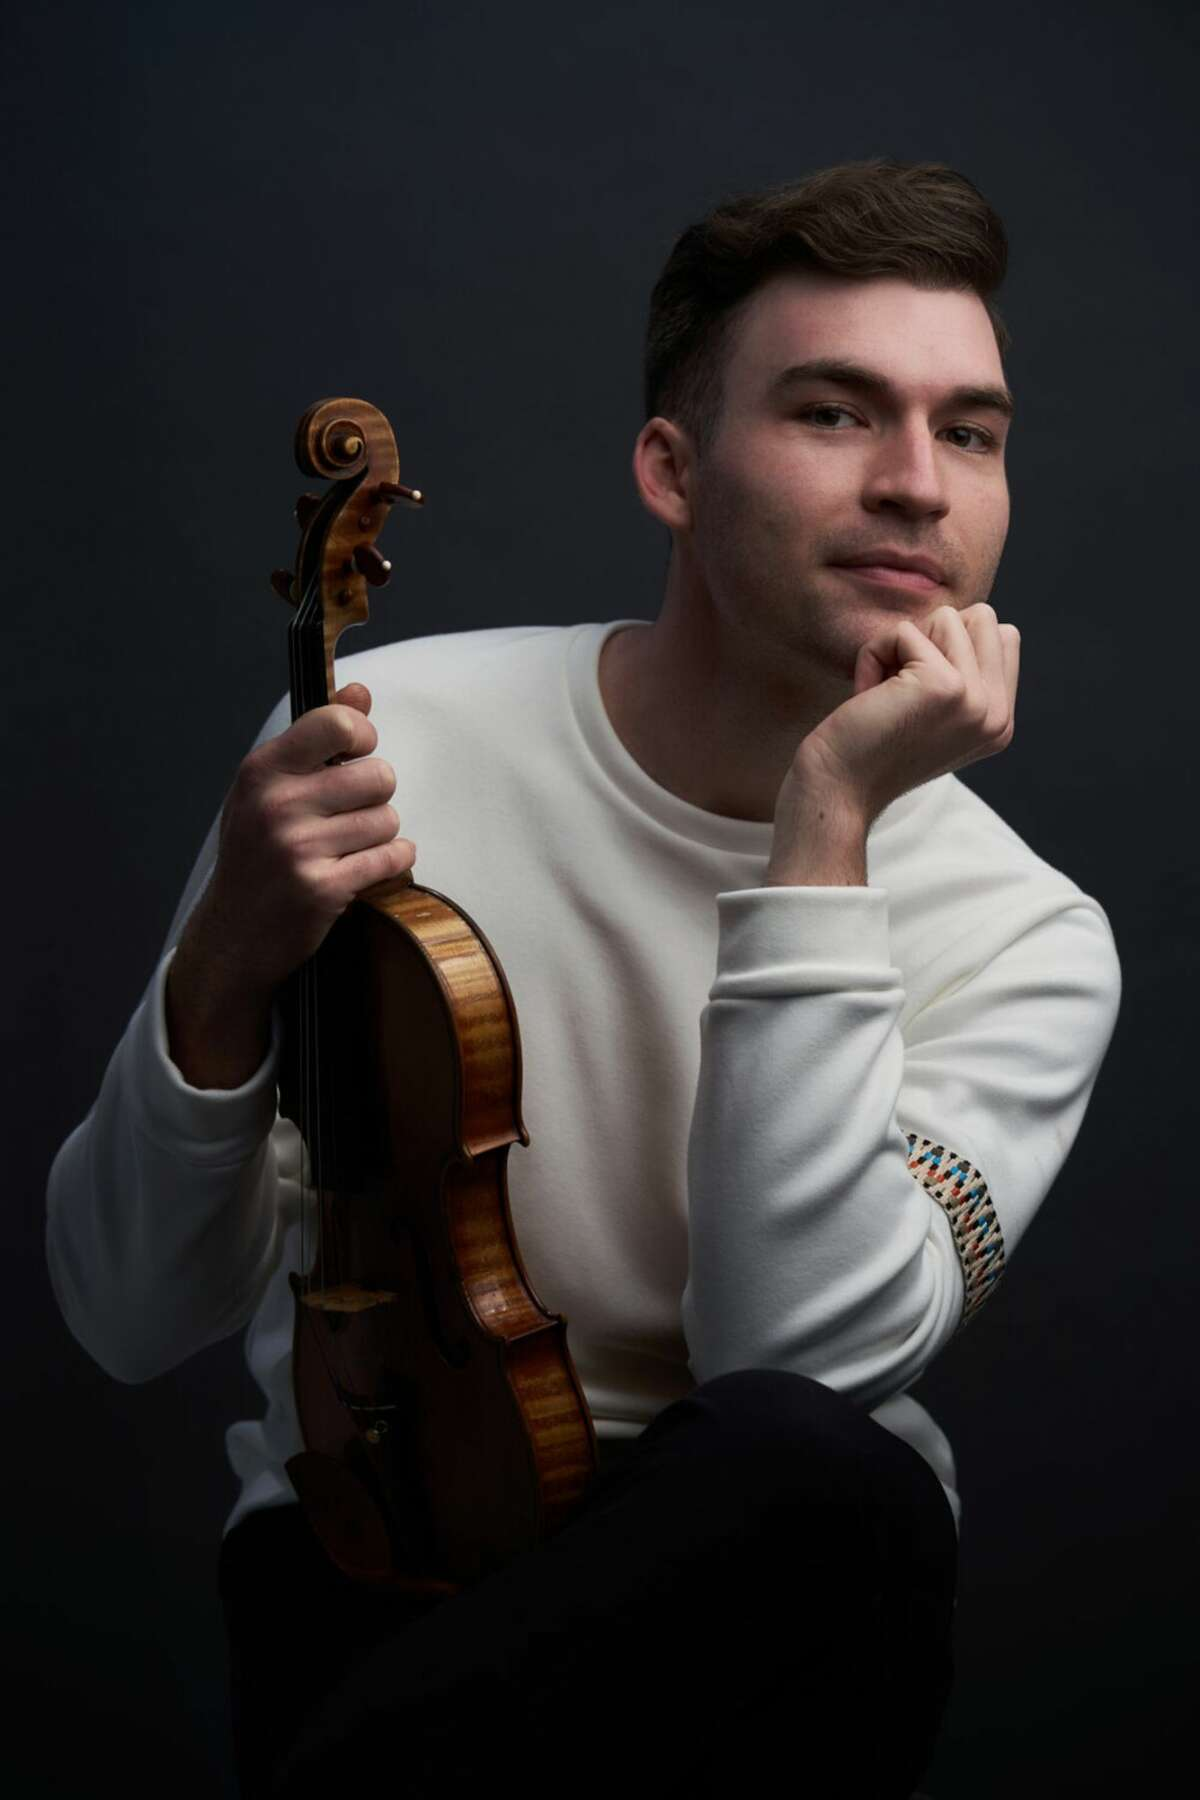 Alexi Kenney will perform Jan. 23, 2022, at the College of St. Rose's Massry Center in Albany as part of Capital Region Classical's expansion of venues beyond its longtime home at Union College.